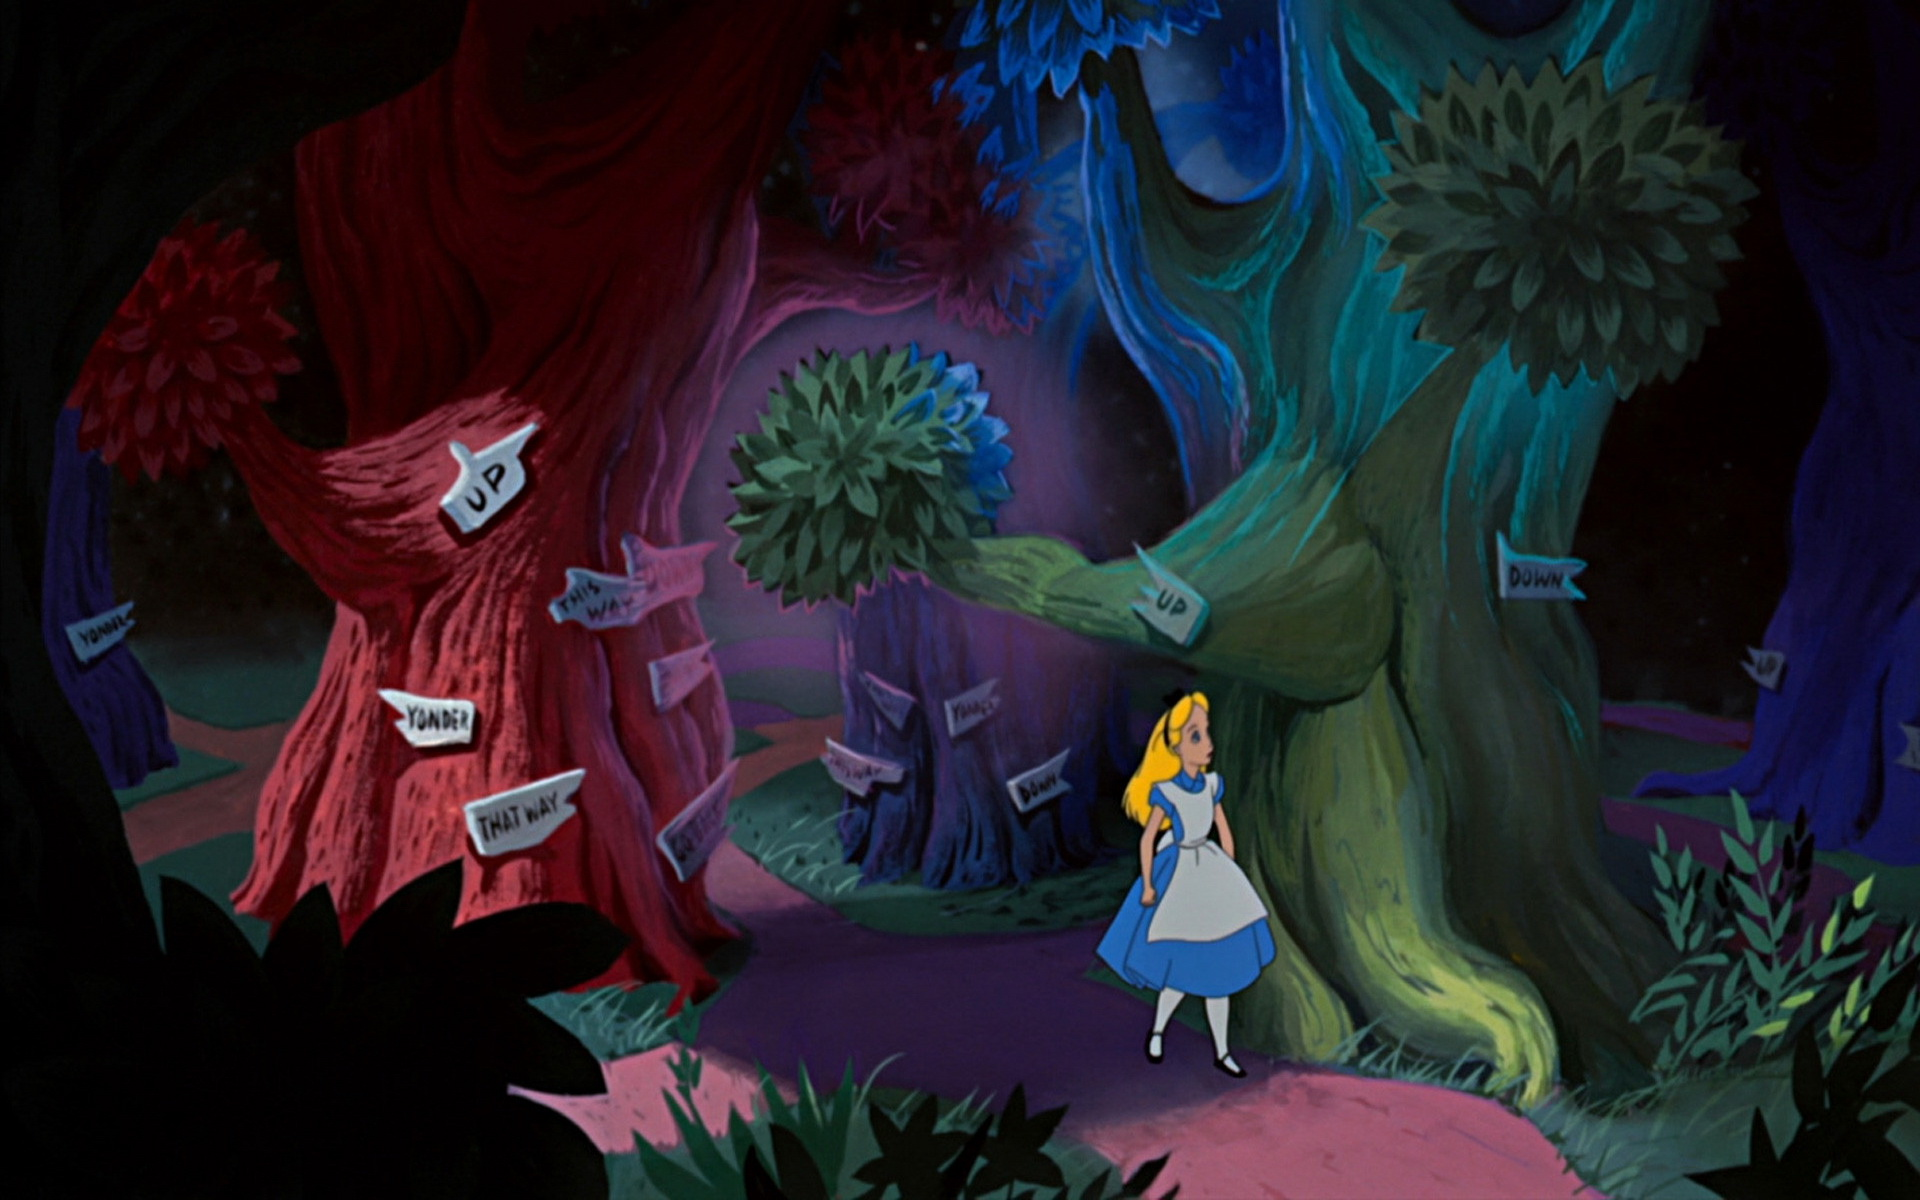 Alice In Wonderland Cartoon HD Desktop Backgrounds  All HD Wallpapers 1920x1200